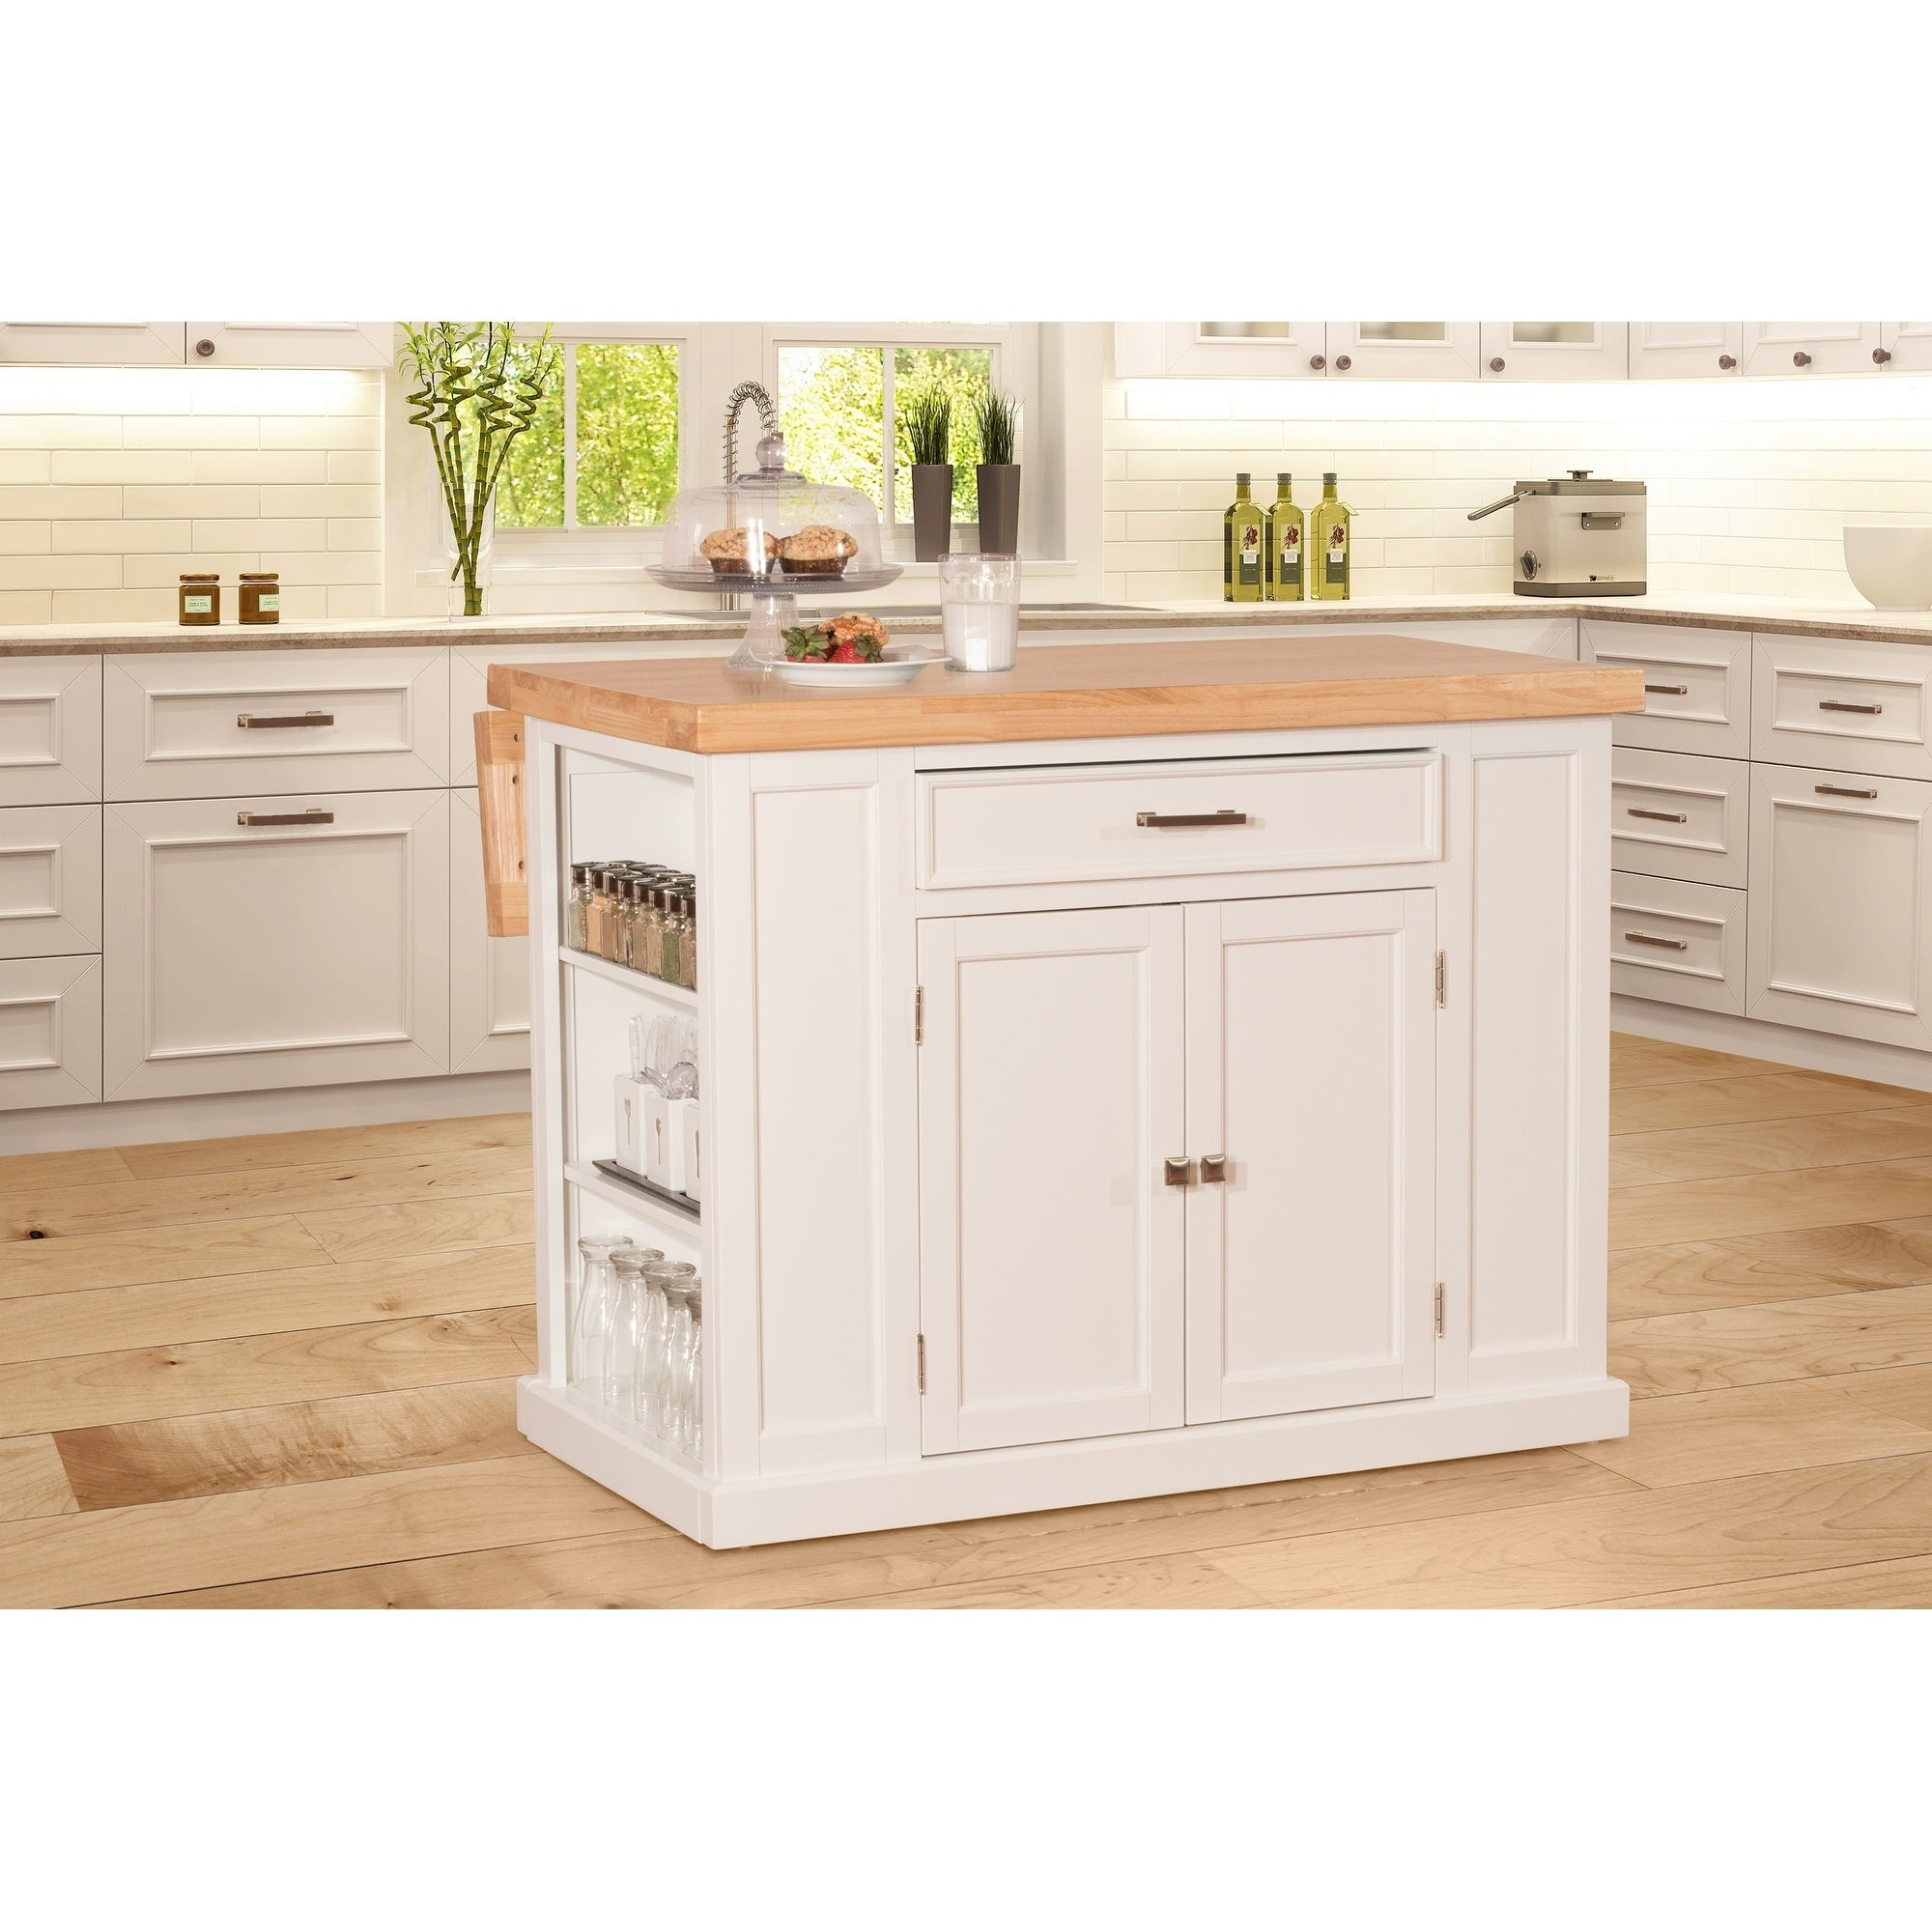 Flemington Kitchen Island In White With Wood Top By Hilale Furniture